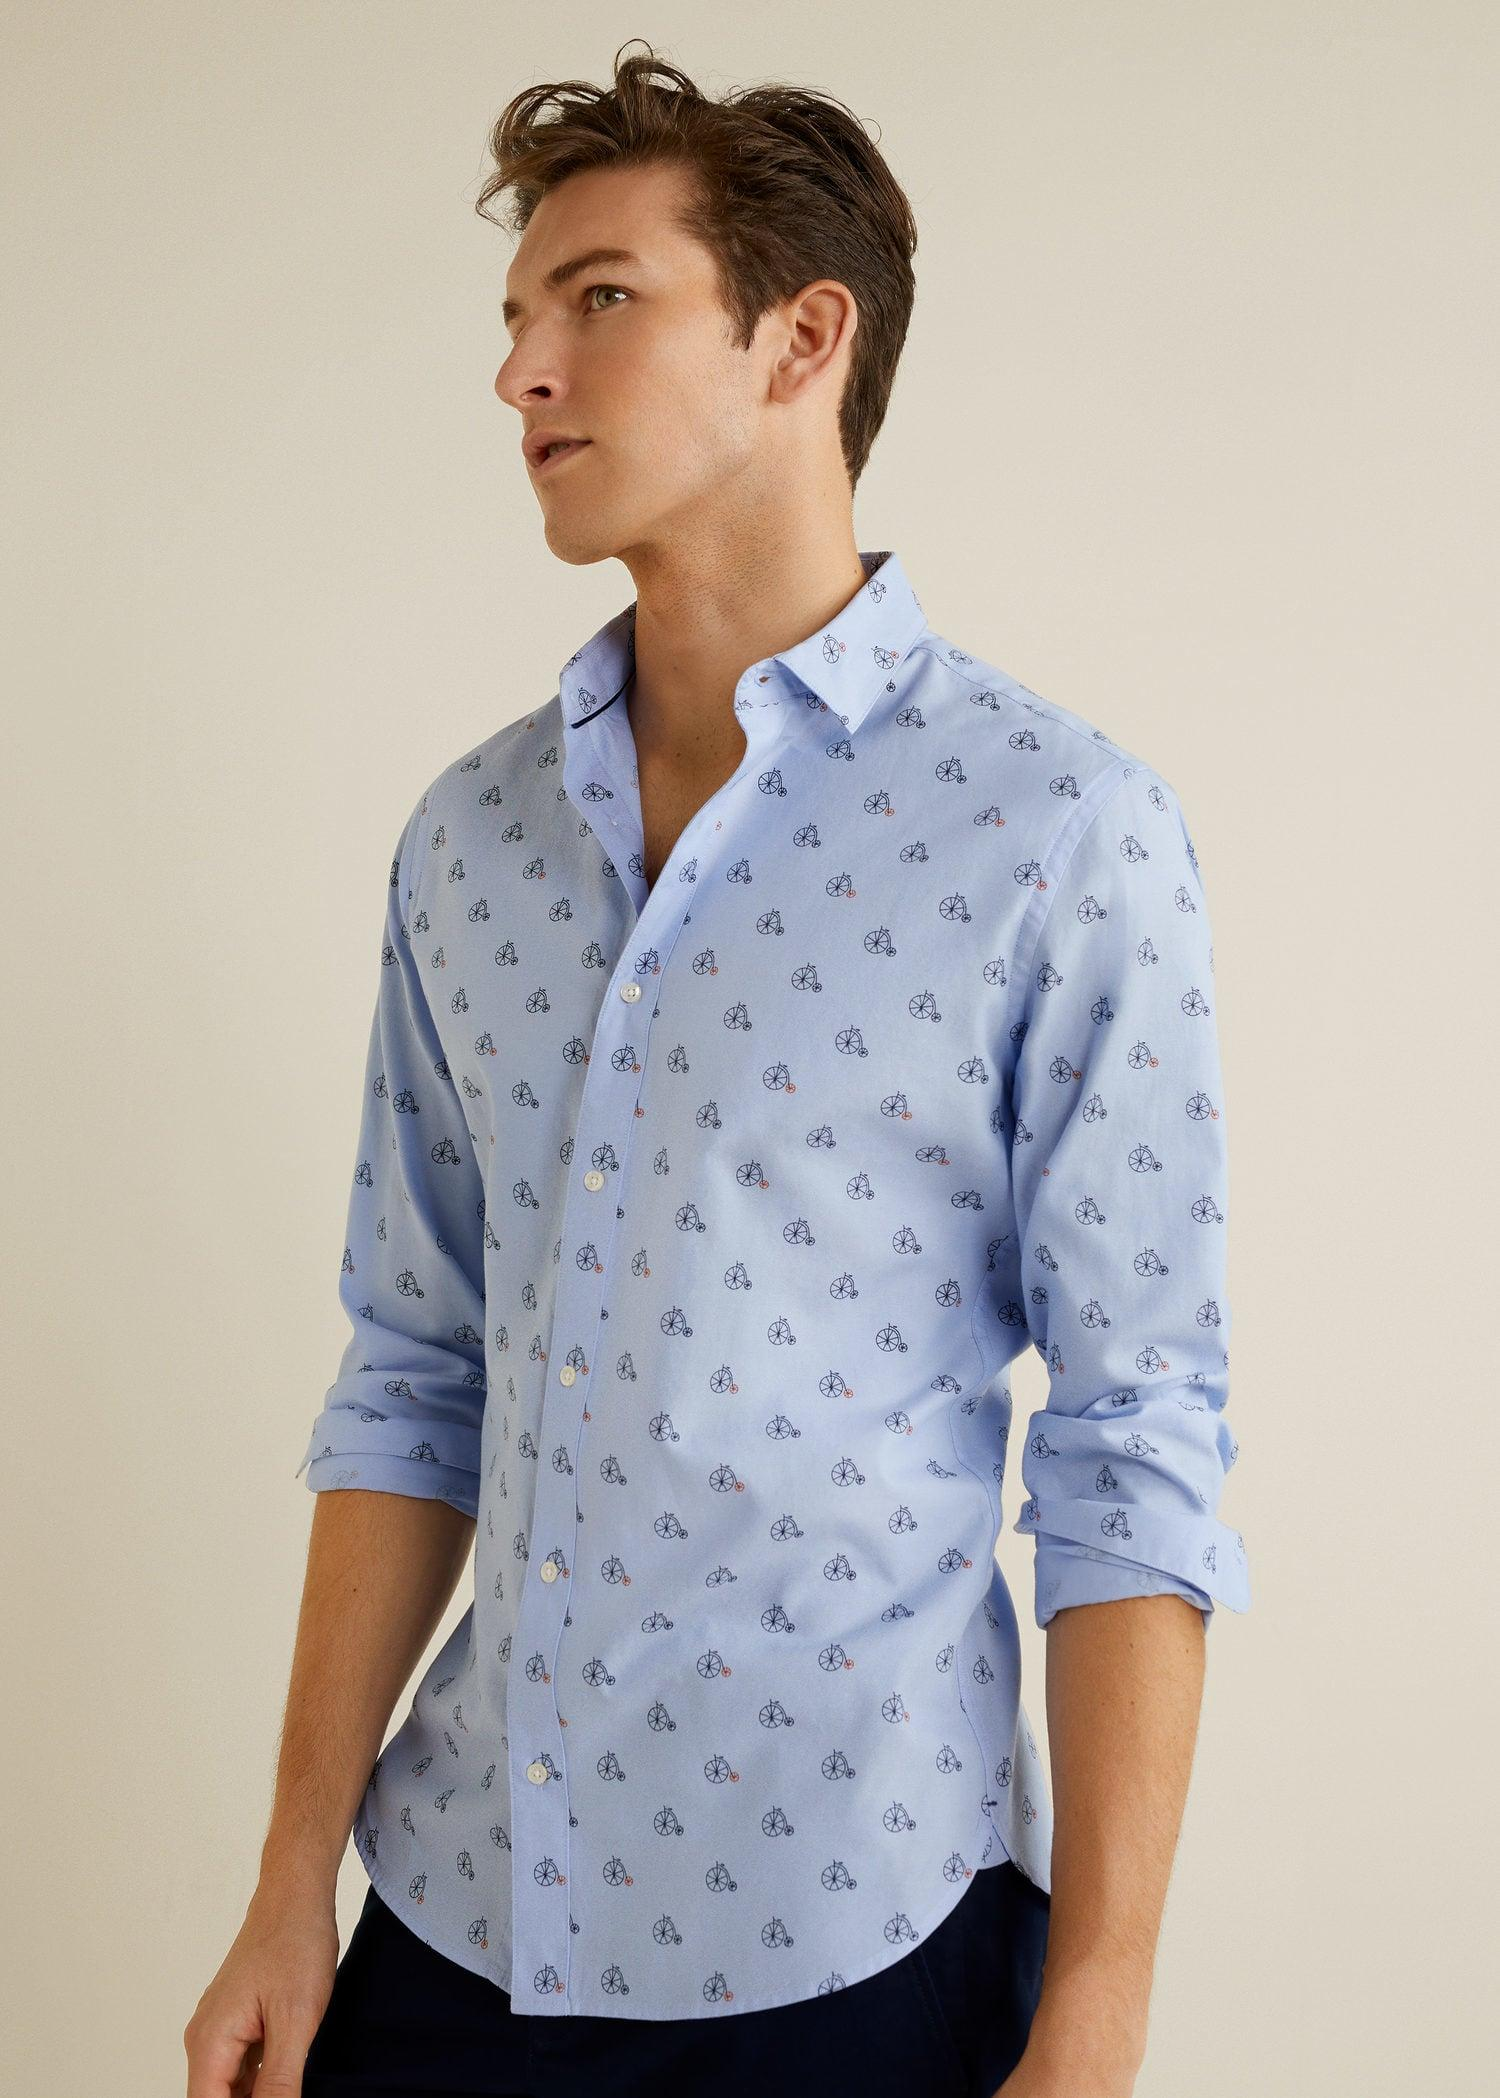 341353557a47 Lyst - Mango Slim-fit Printed Cotton Shirt in Blue for Men